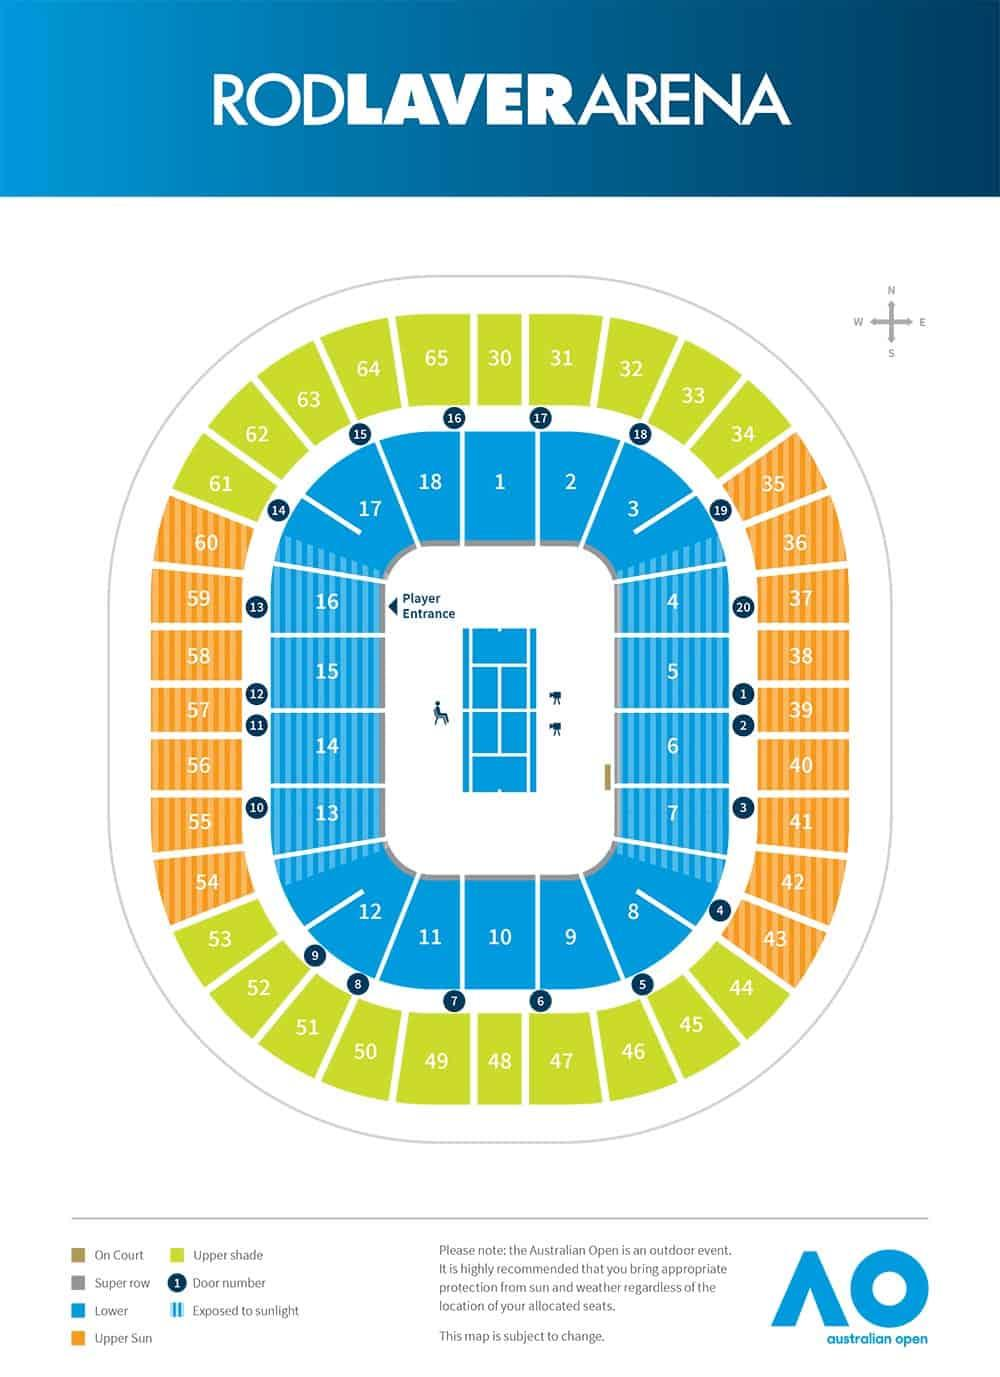 Rod Laver Arena Seating Map 2020